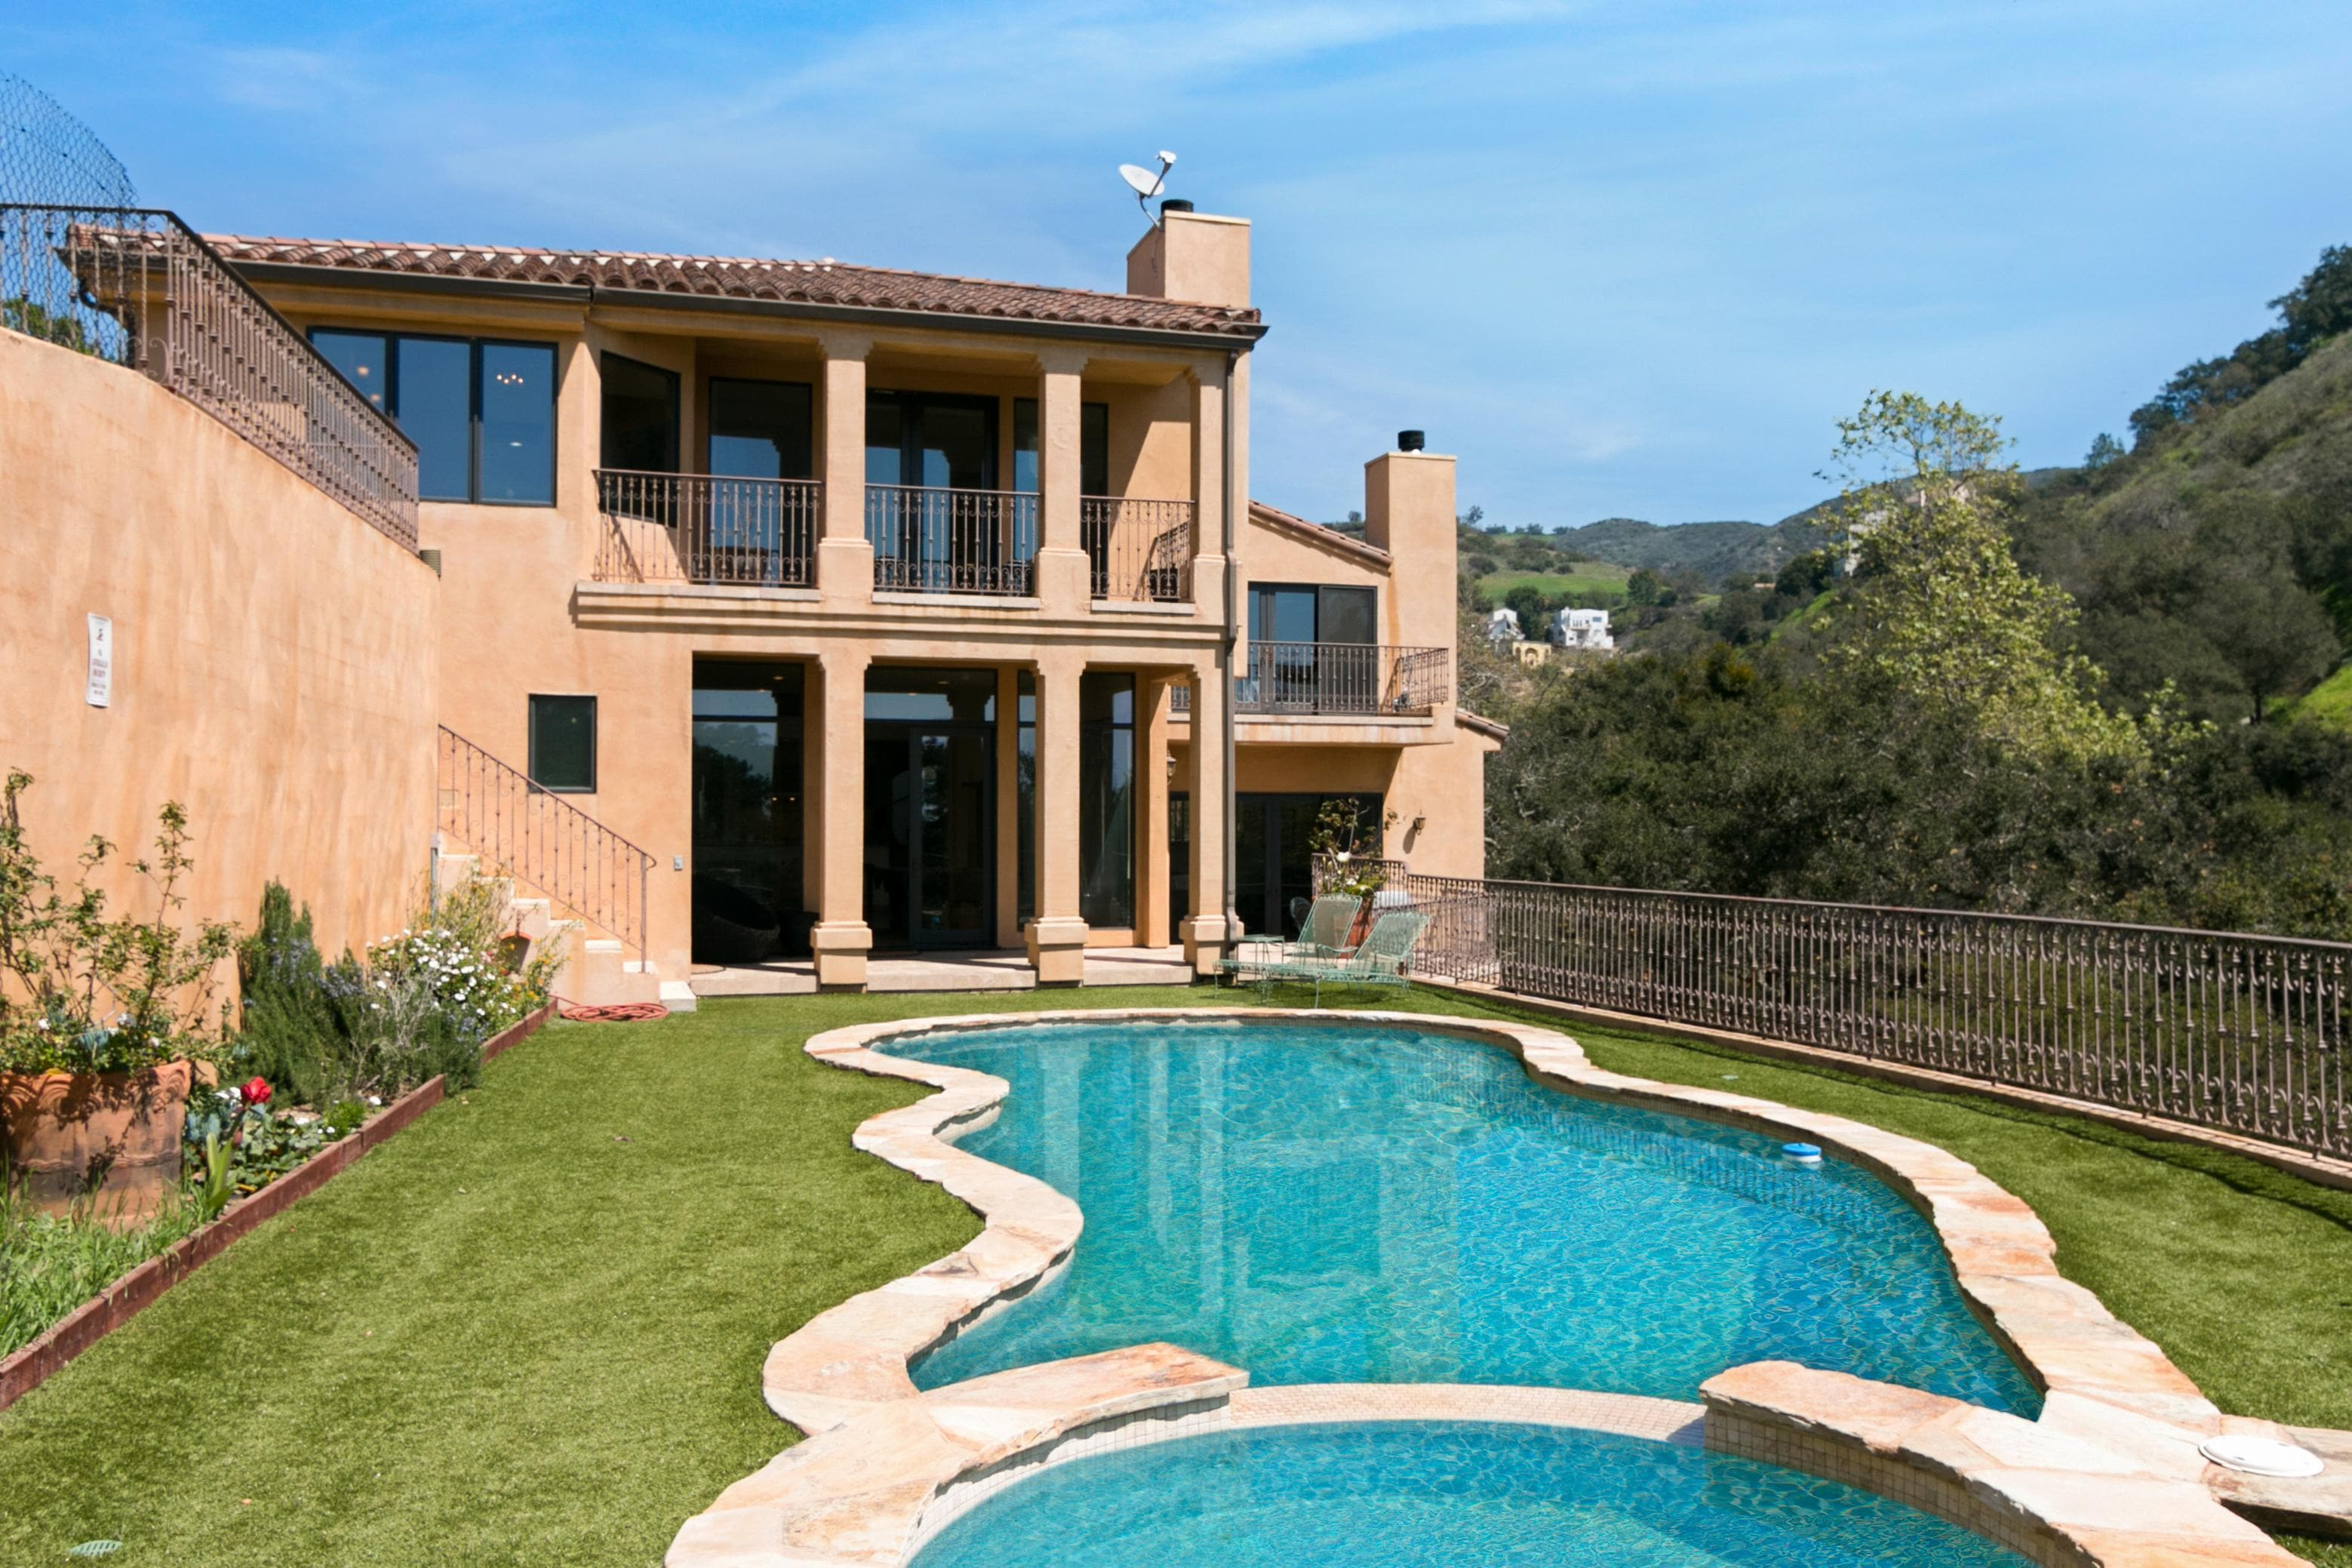 Property Image 1 - Immaculate 4BR/5.5BA Villa w/ Private Pool & Spa